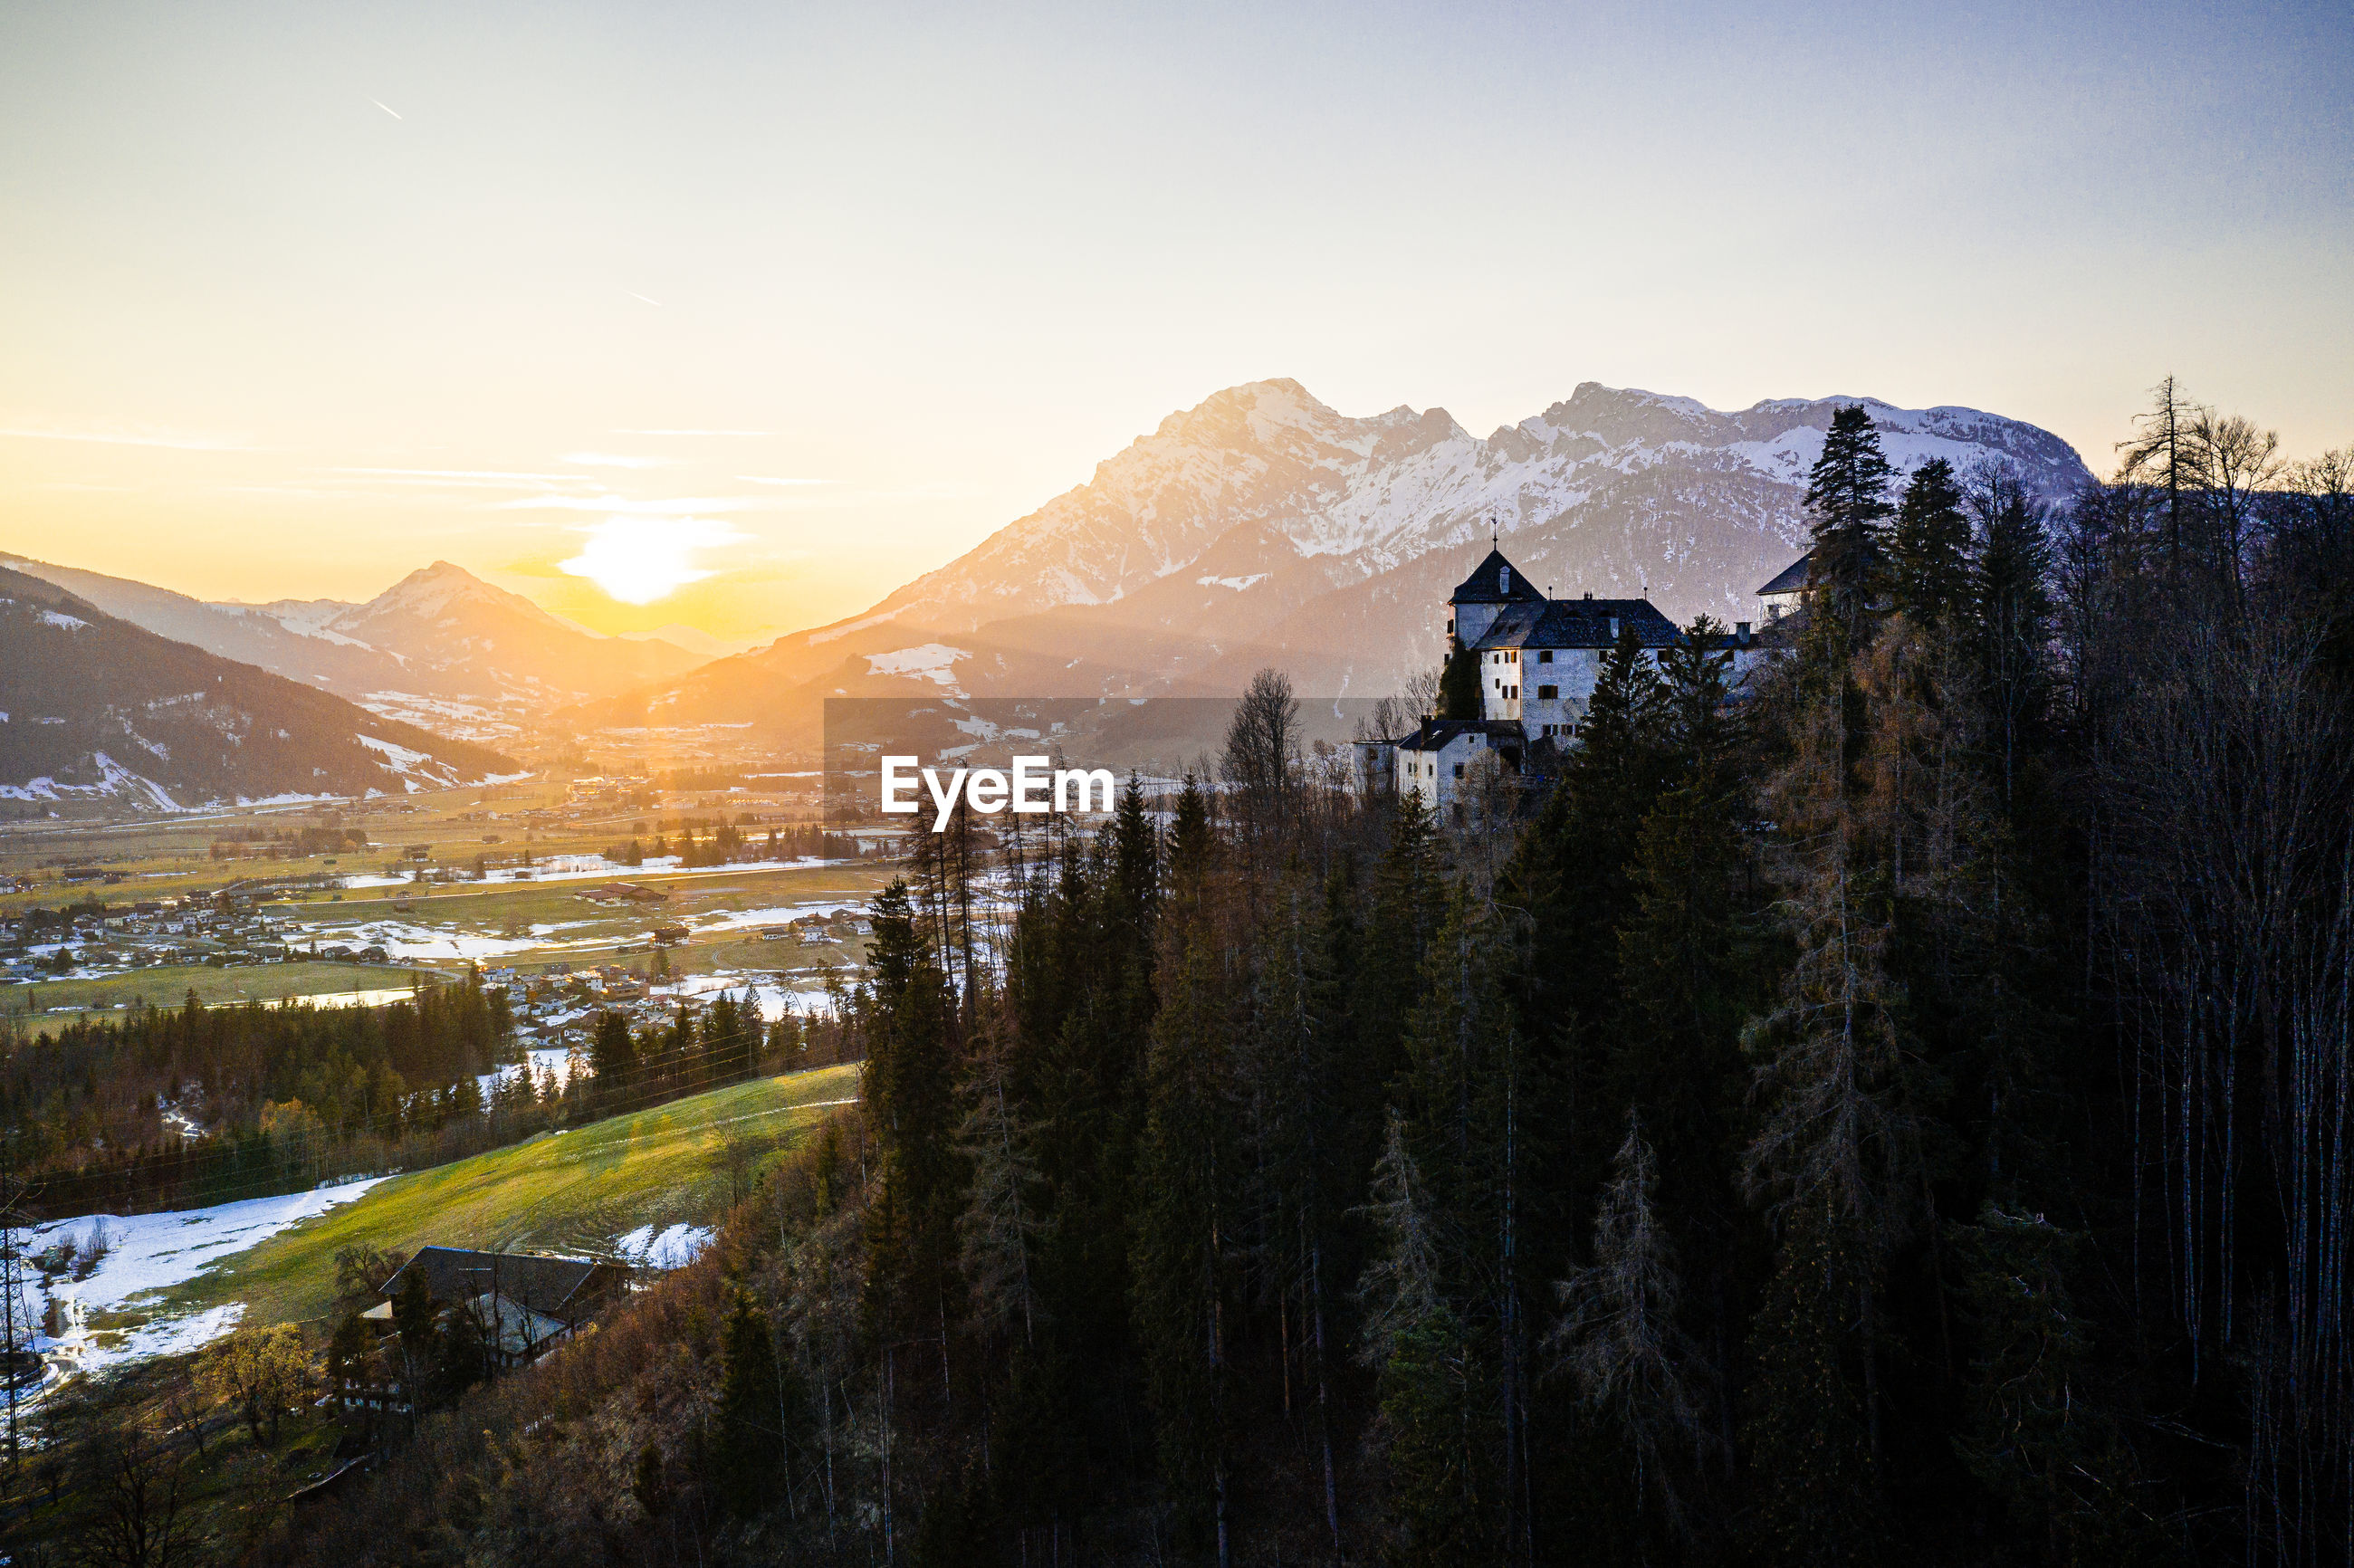 Scenic view of snowcapped mountains against sky during sunset with a castle in the voreground